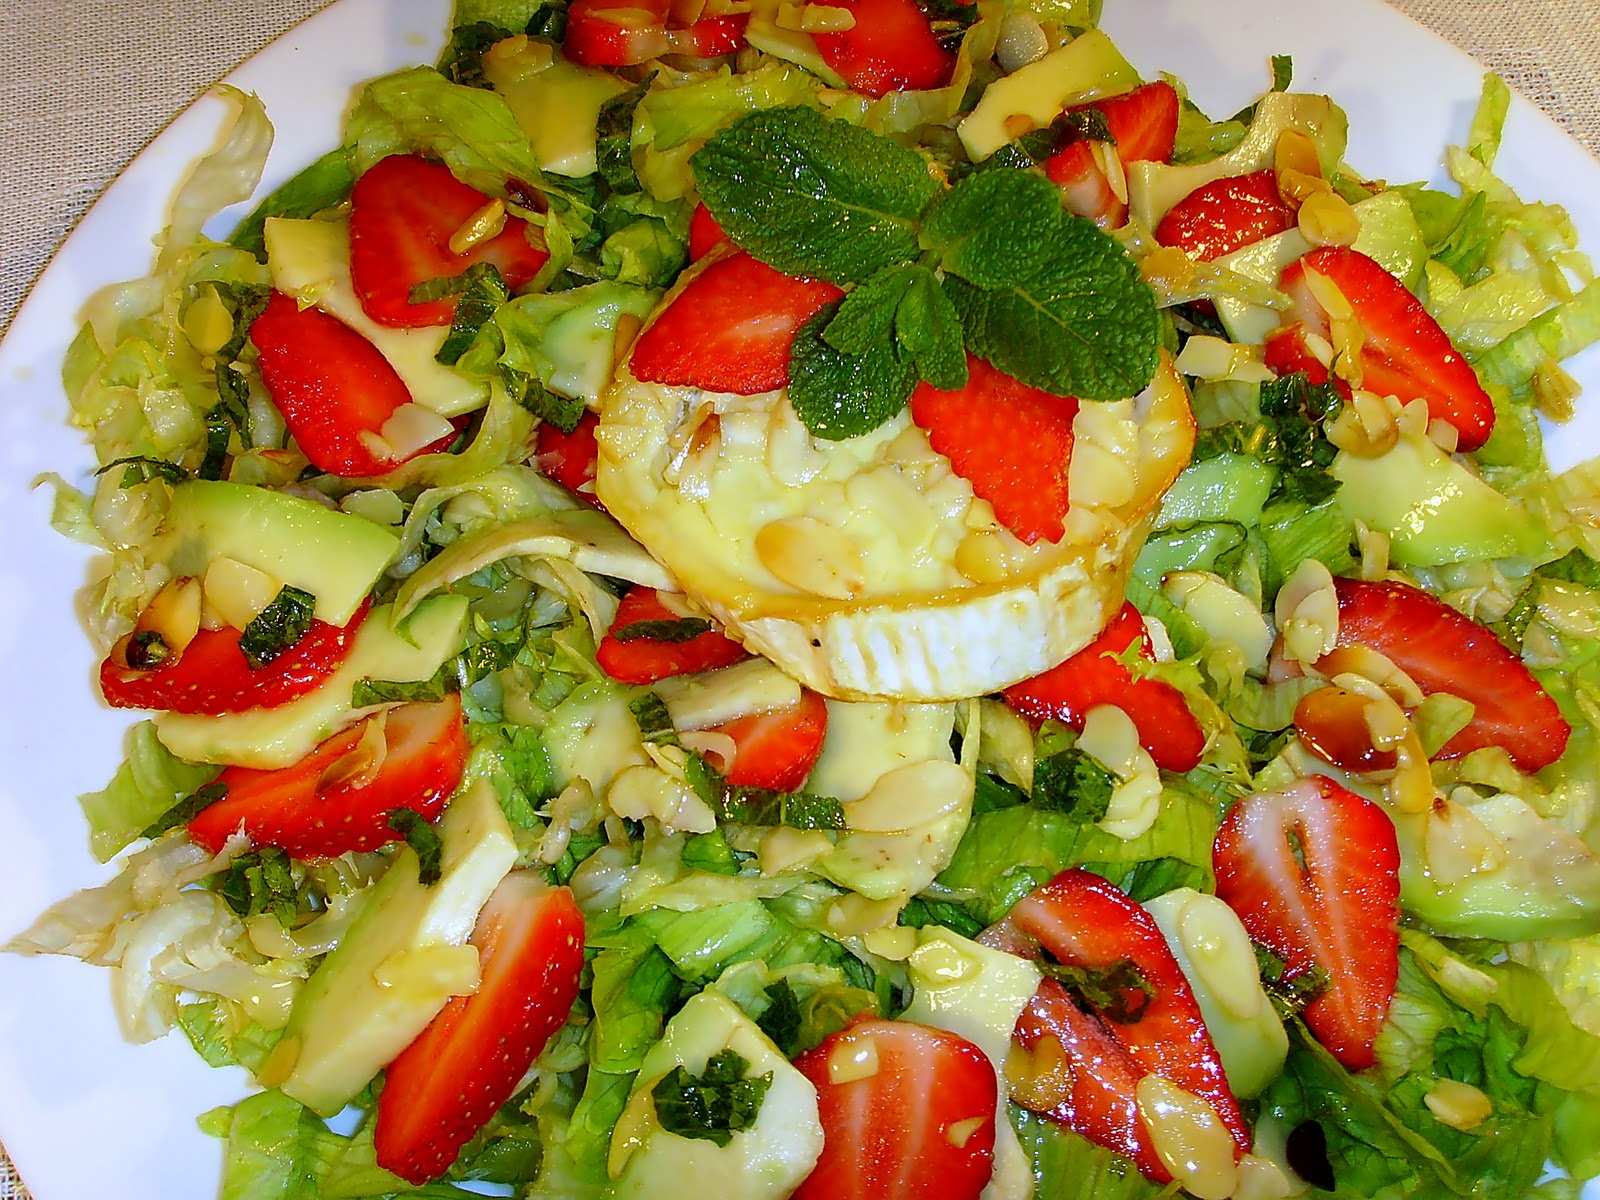 ... / Roasted French Goat Cheese Salad with Honey and Strawberries